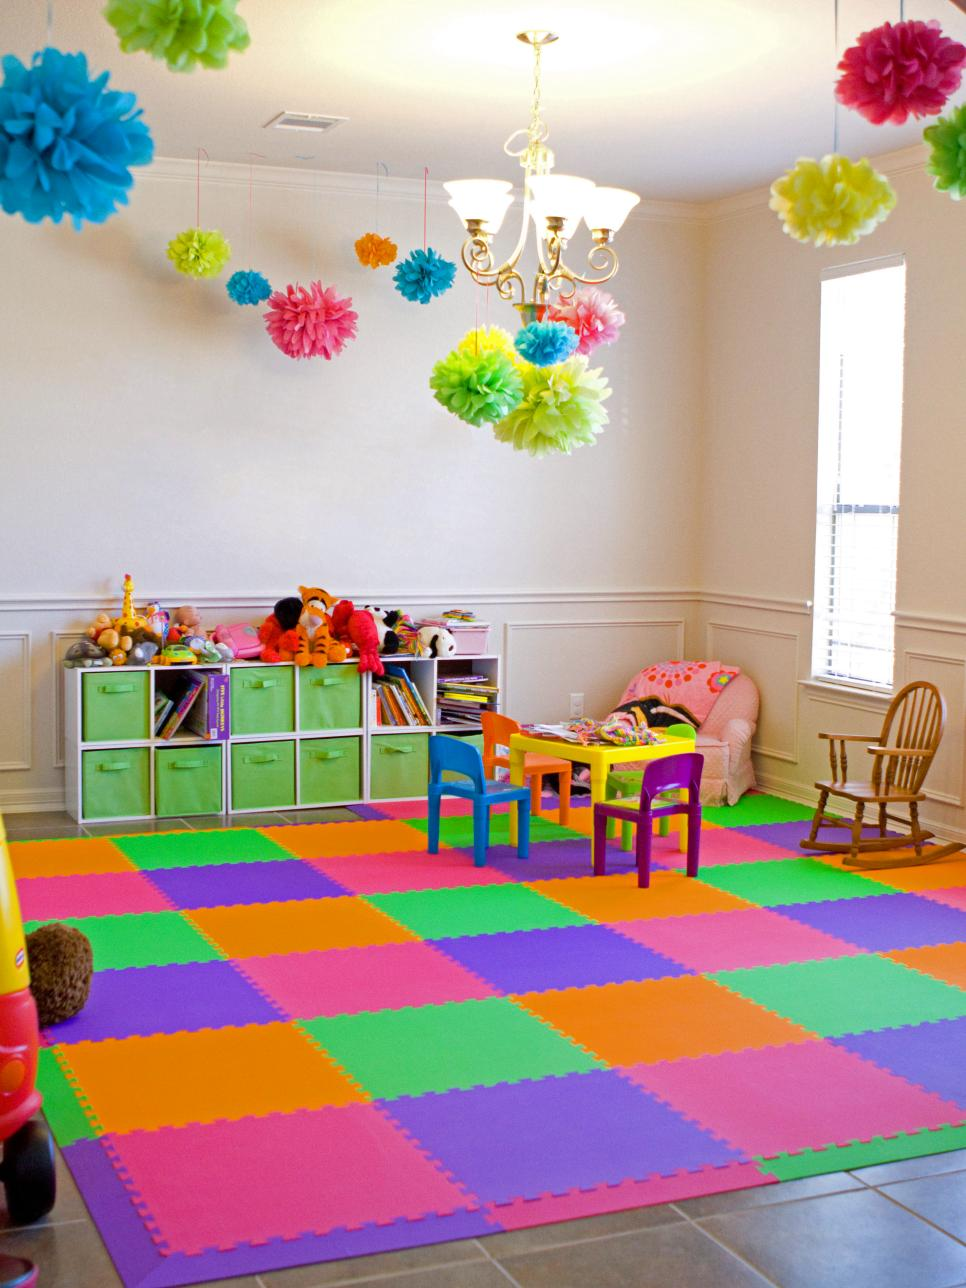 8 kids 39 flooring ideas hgtv for Small room flooring ideas